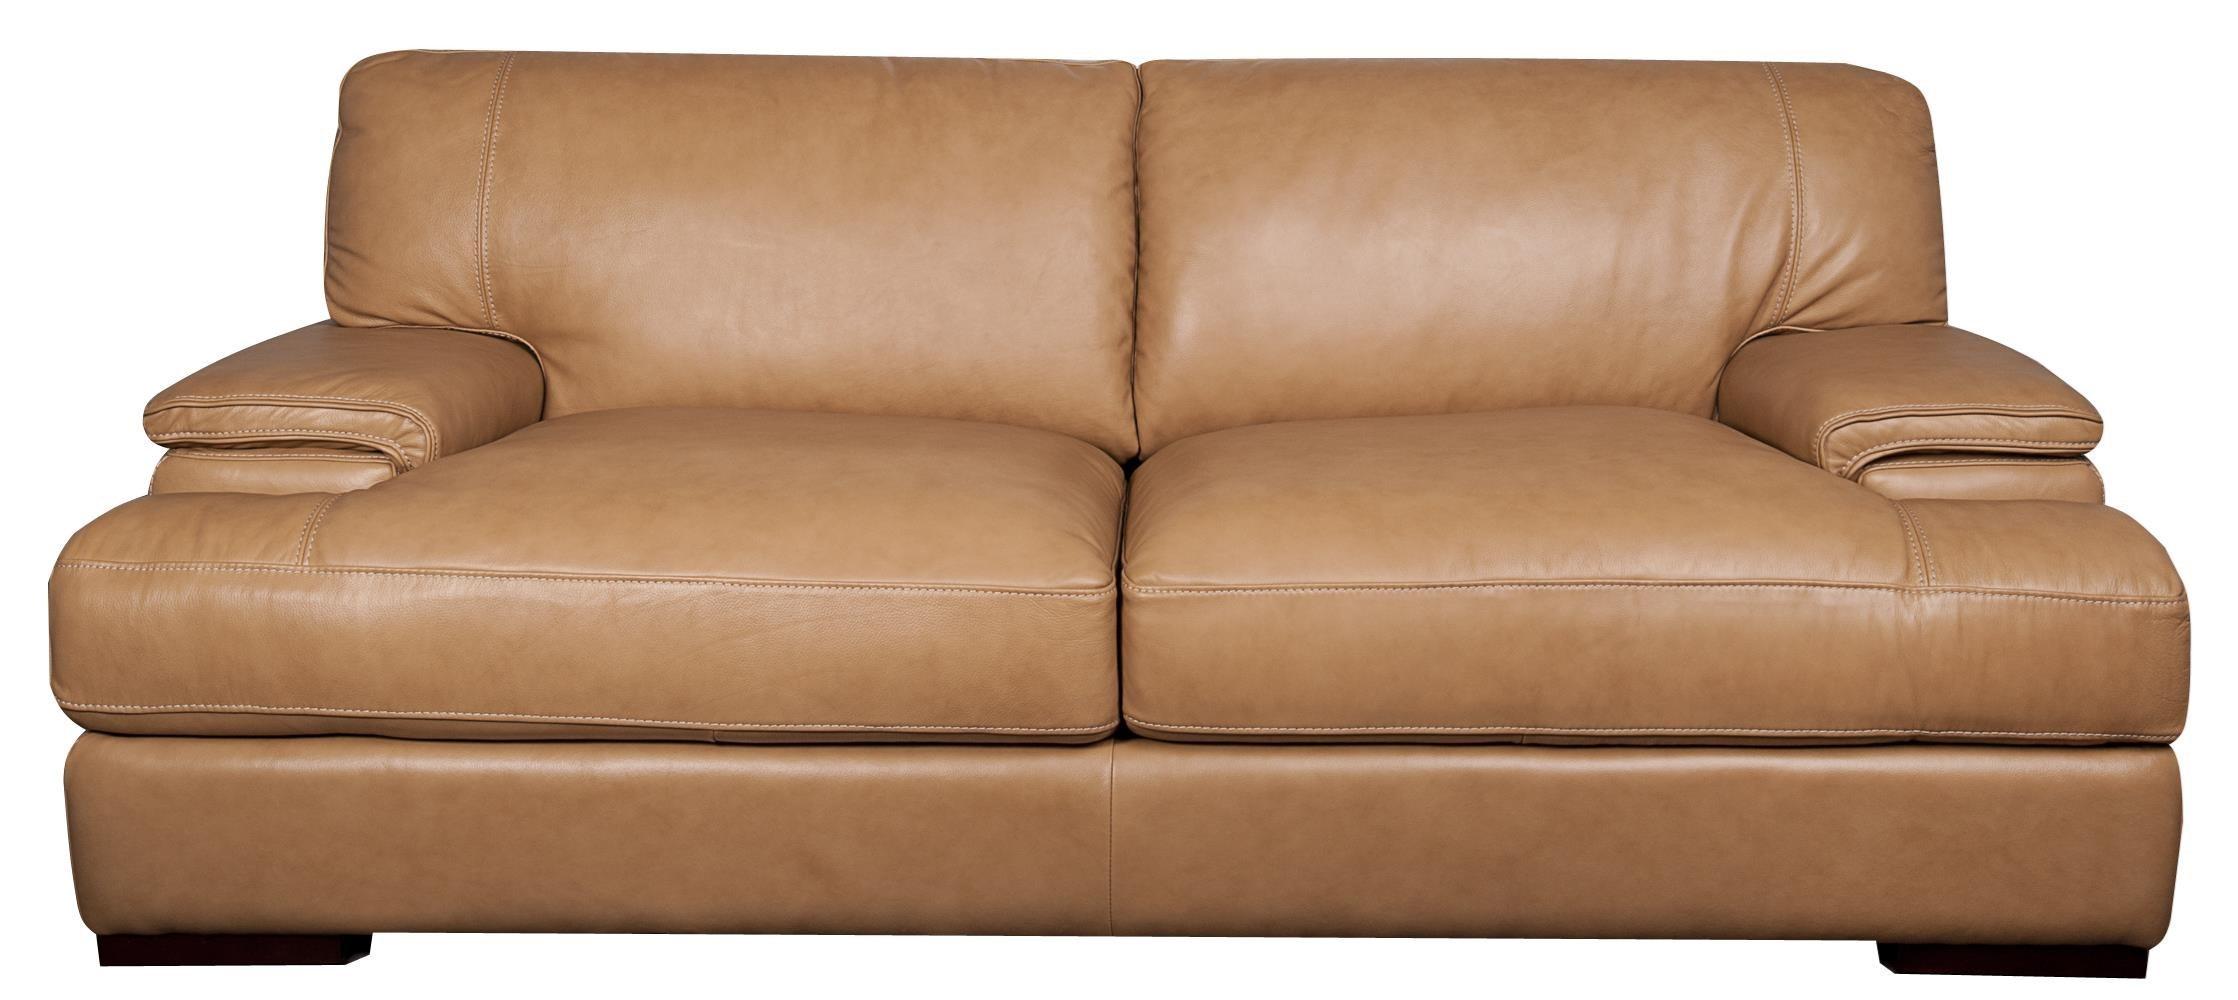 modern leather sofa bed. Delighful Leather Morris Home Furnishings TitusTitus 100 Top Grain Leather Sofa  Throughout Modern Bed